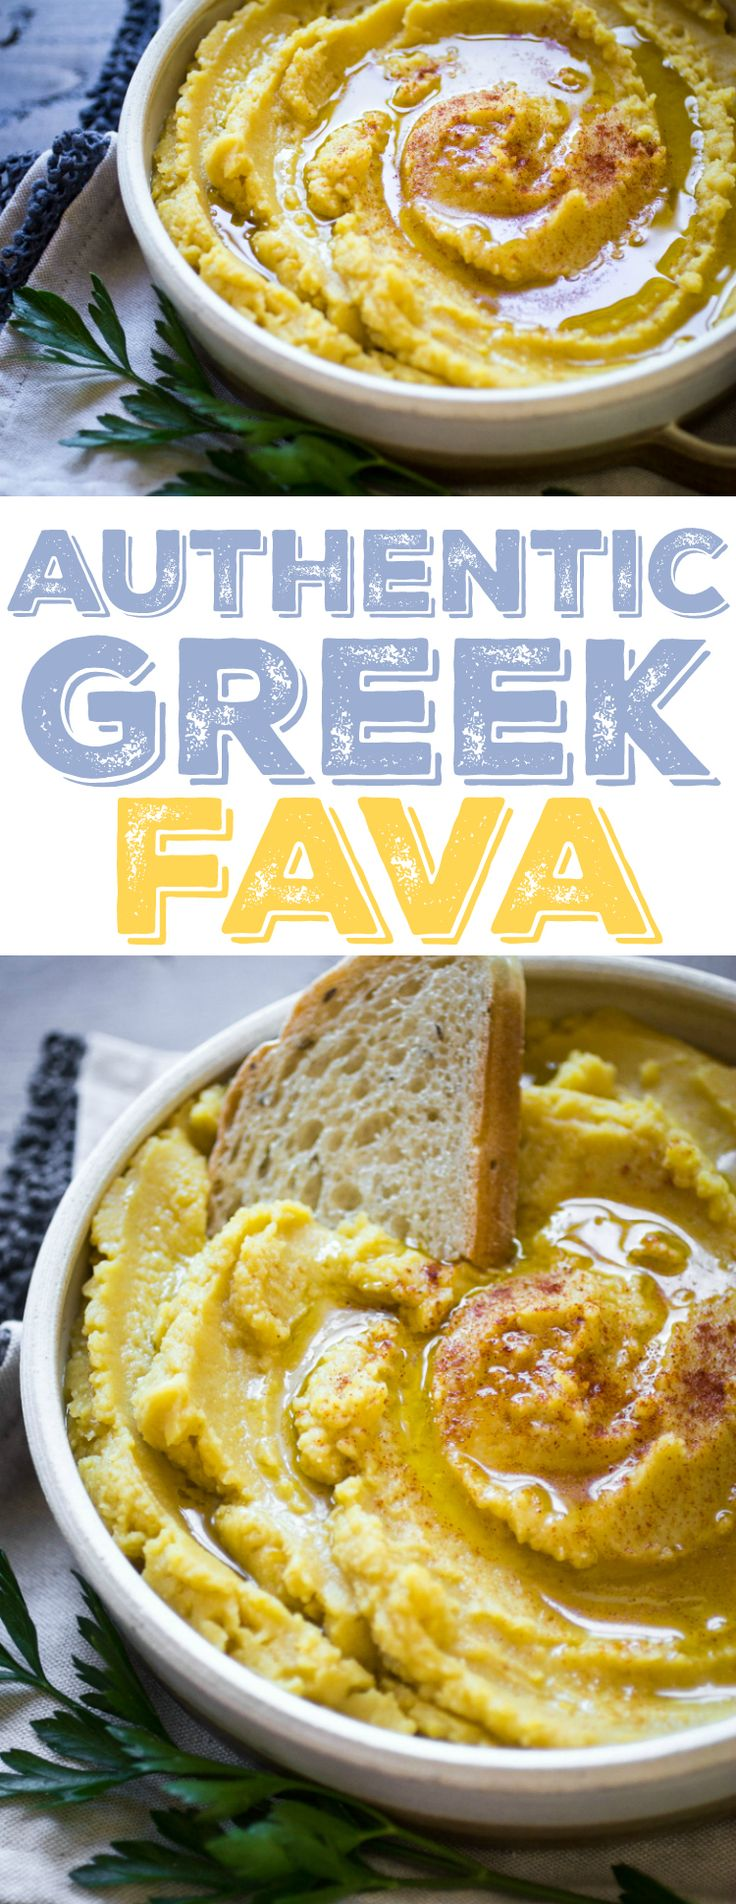 Traditional Greek Fava is one of the best things I tasted in Greece. All it takes is a handful of ingredients and a half an hour of time. Serve with plenty of crusty bread and red wine!